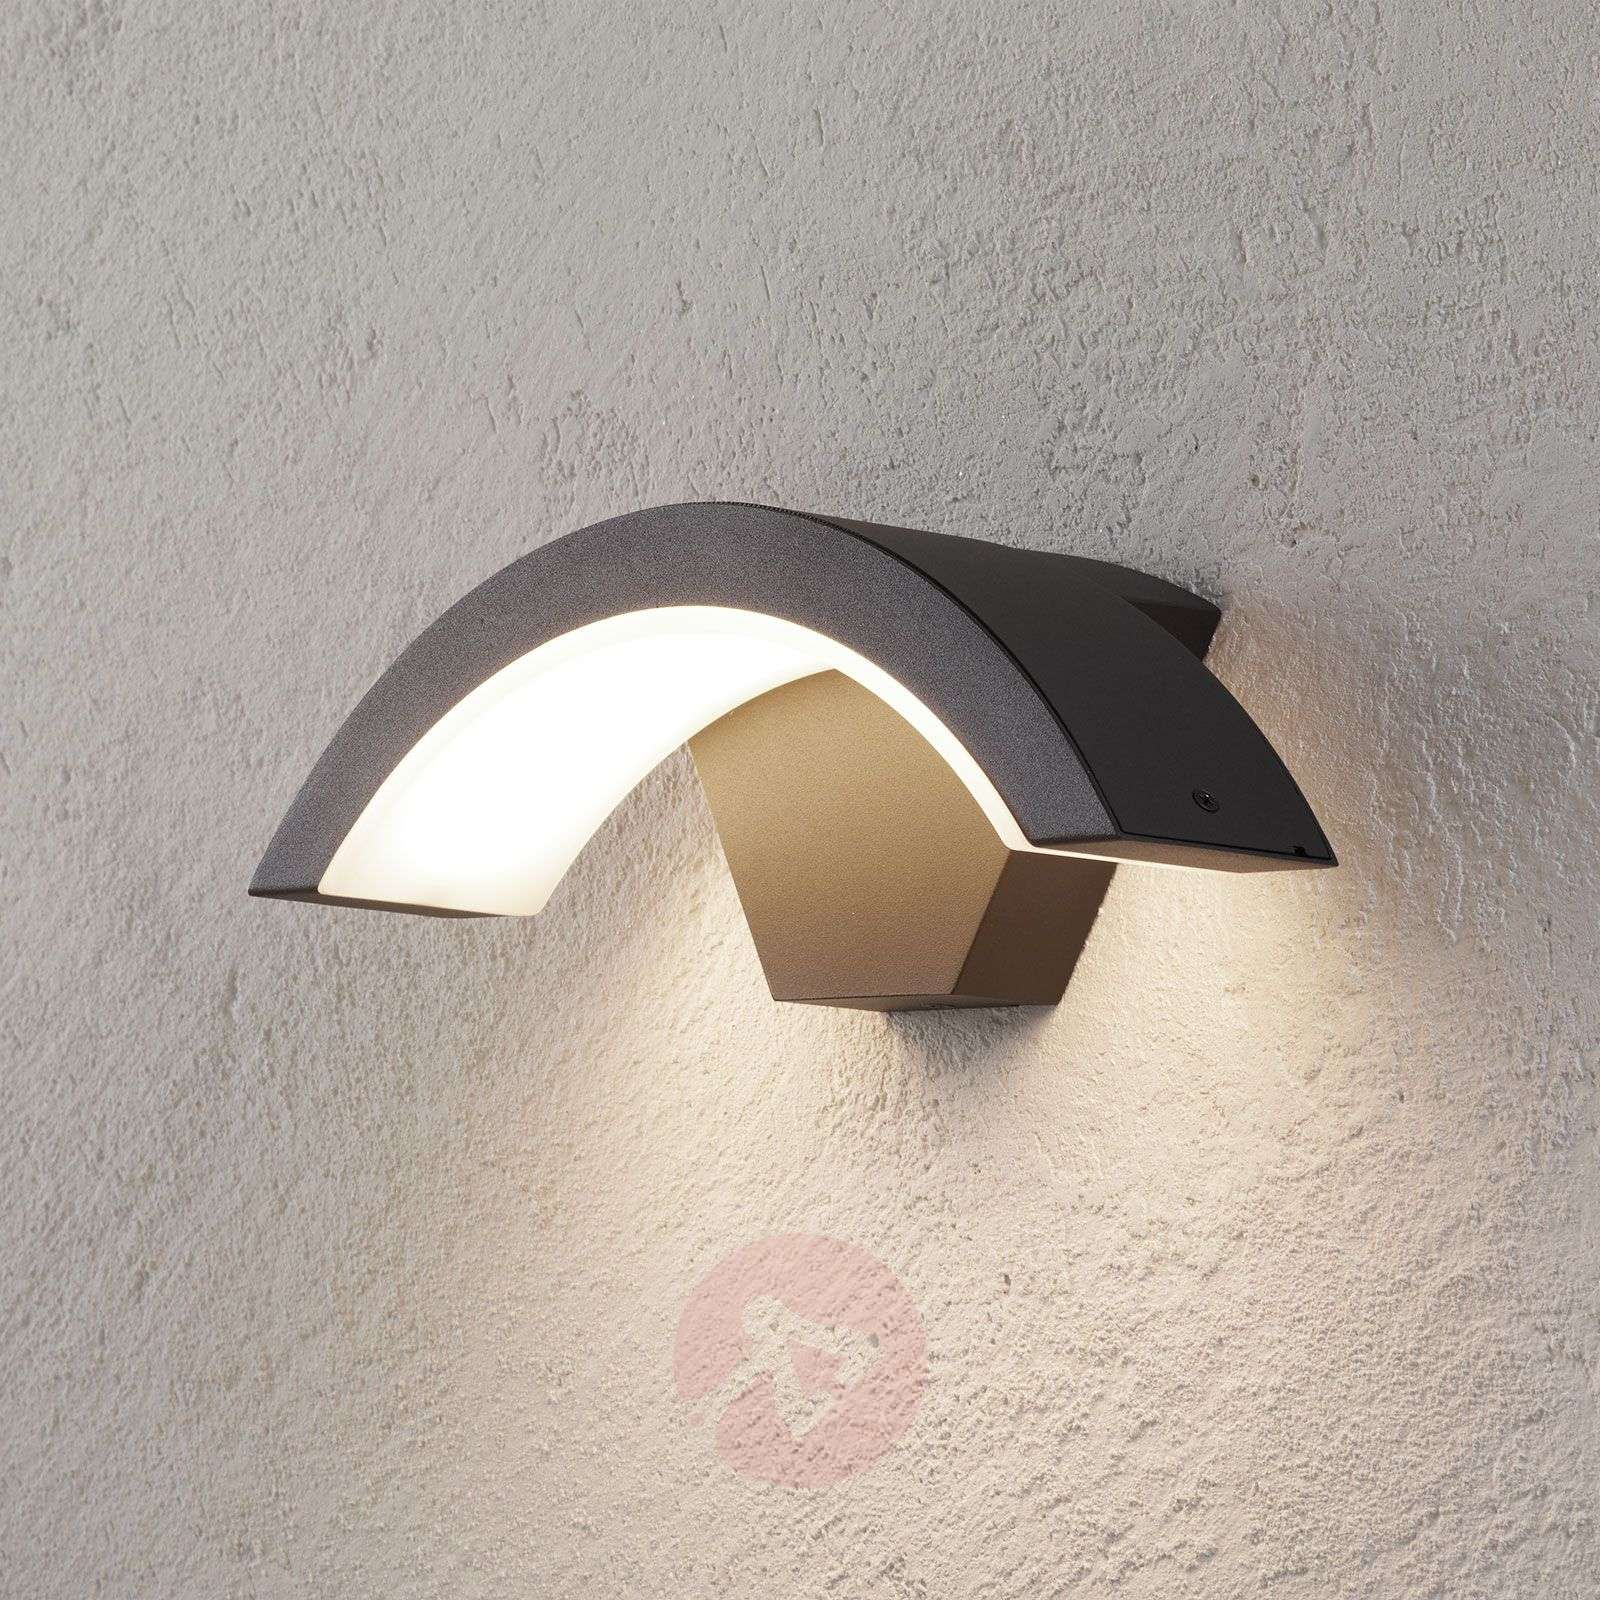 Ohio LED outdoor wall light, anthracite-9004662-01